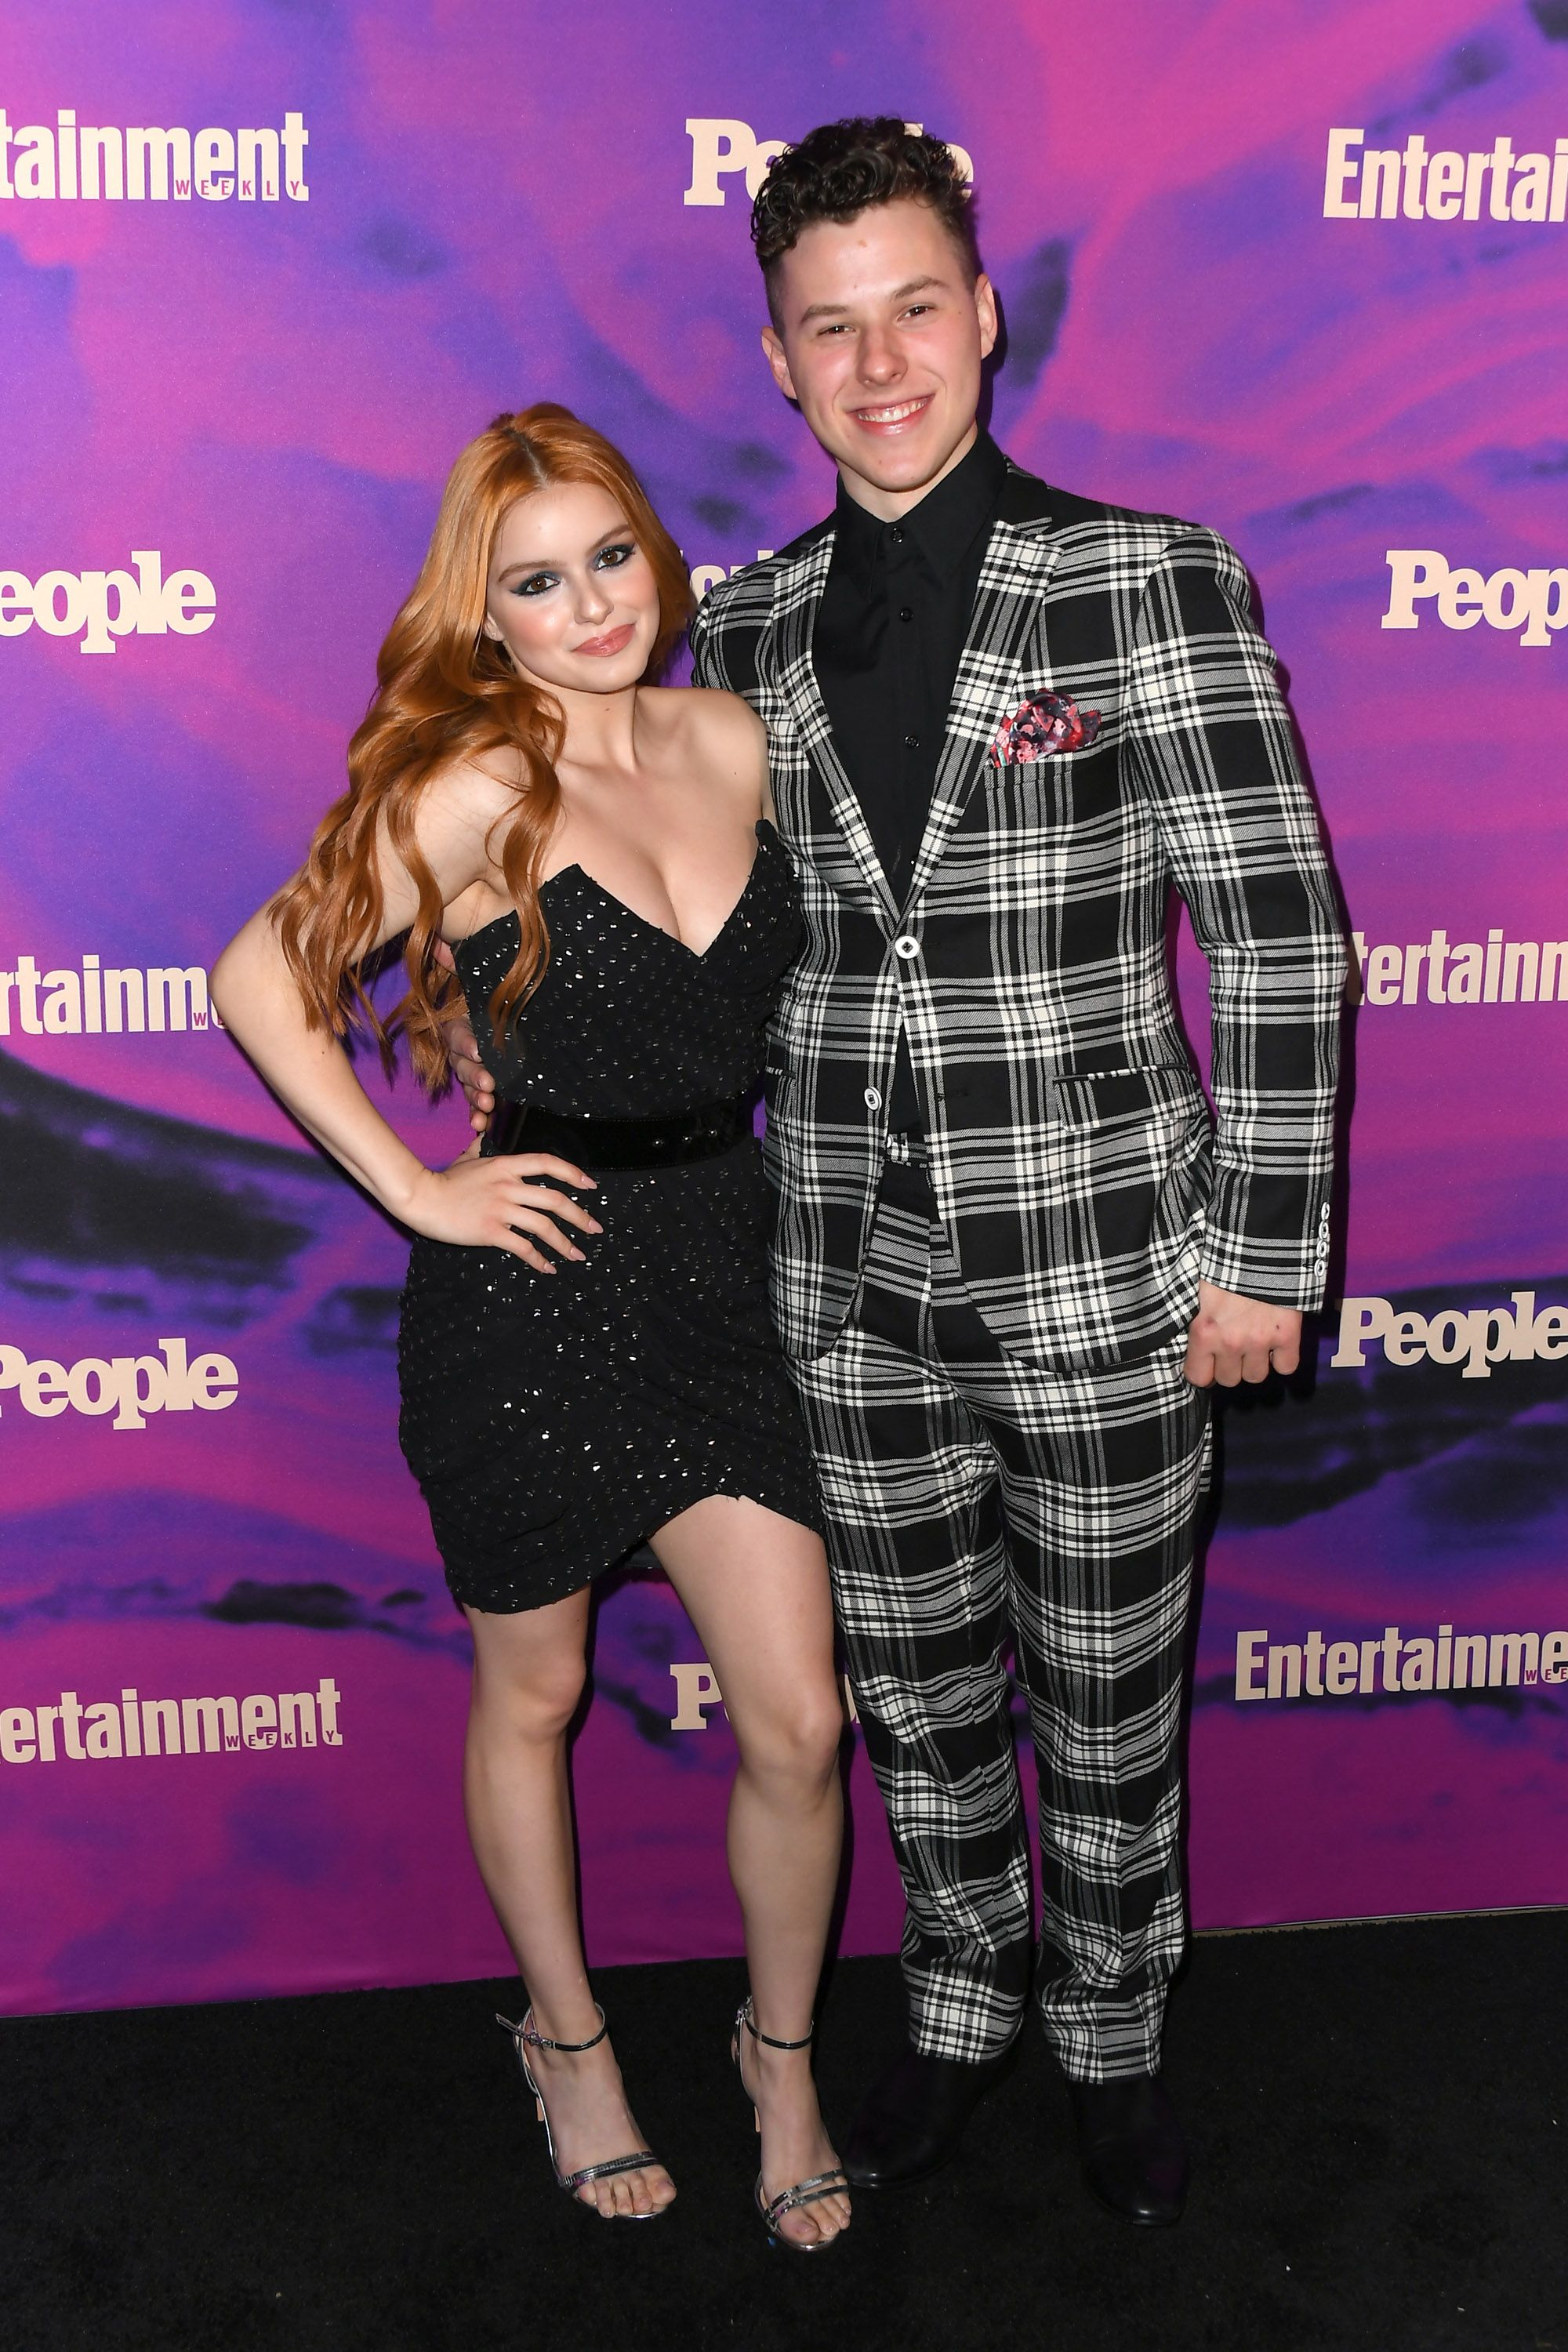 Ariel Winter Stuns In Cracked Marble Yoga Pants To Kiss